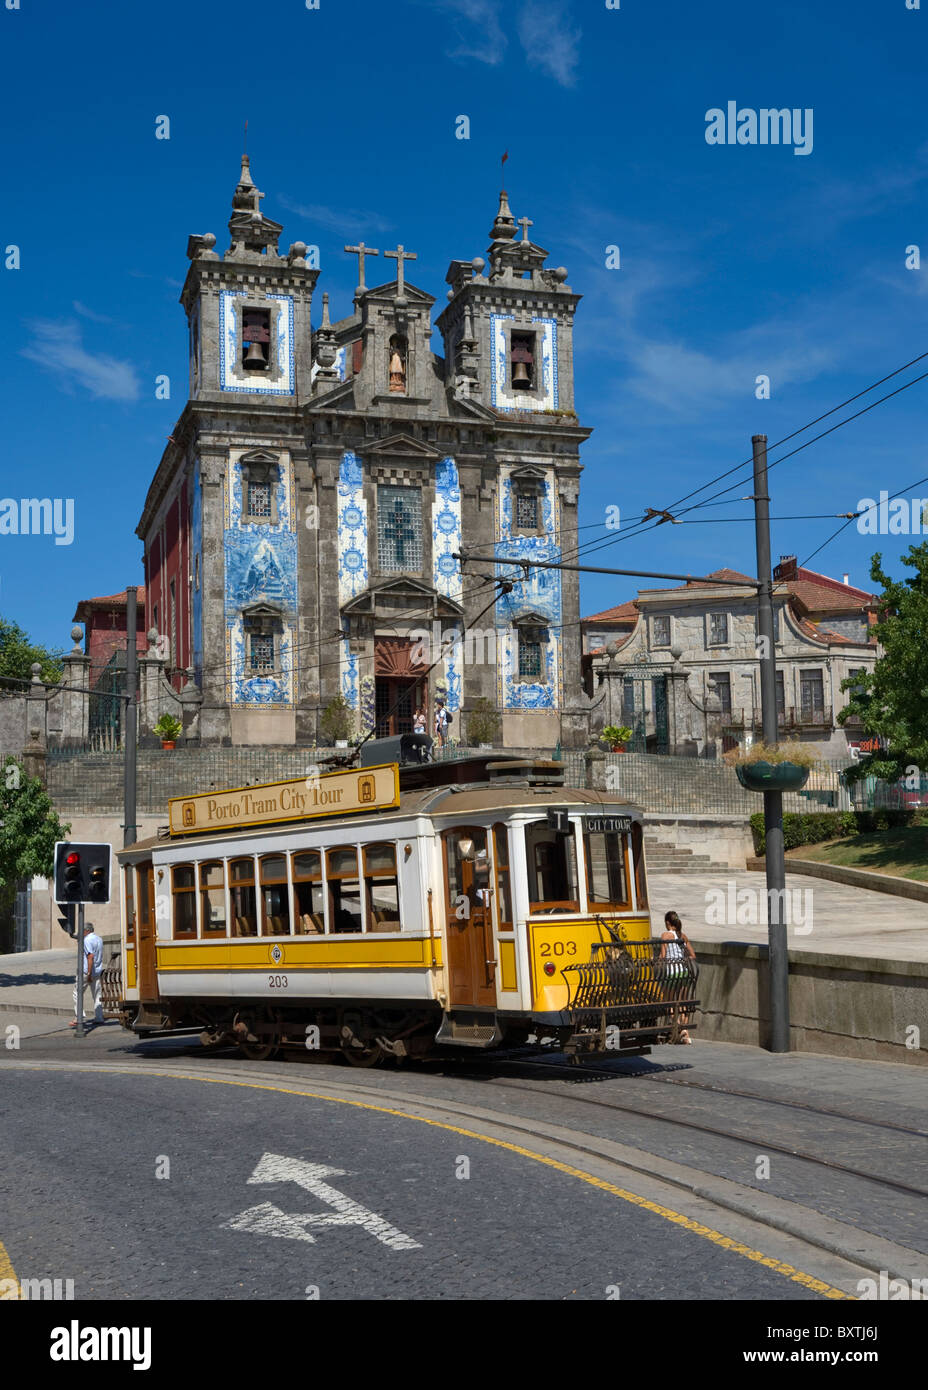 Portugal, Porto, Praca Da Batalha, A Sightseeing Tram Outside Santo Ildefonso Church - Stock Image